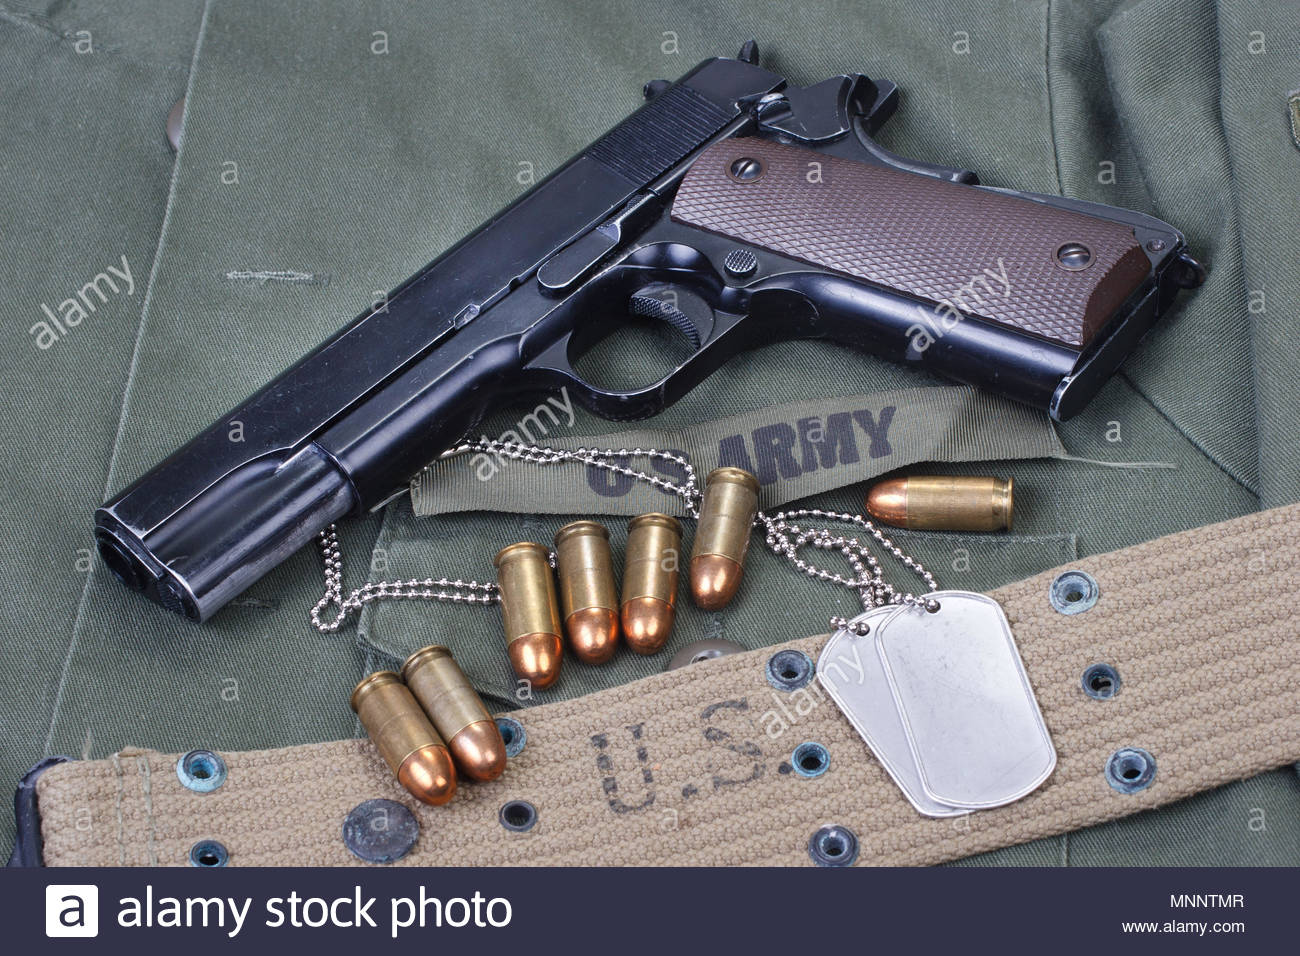 colt government M1911 with US ARMY uniform texture background 1300x956